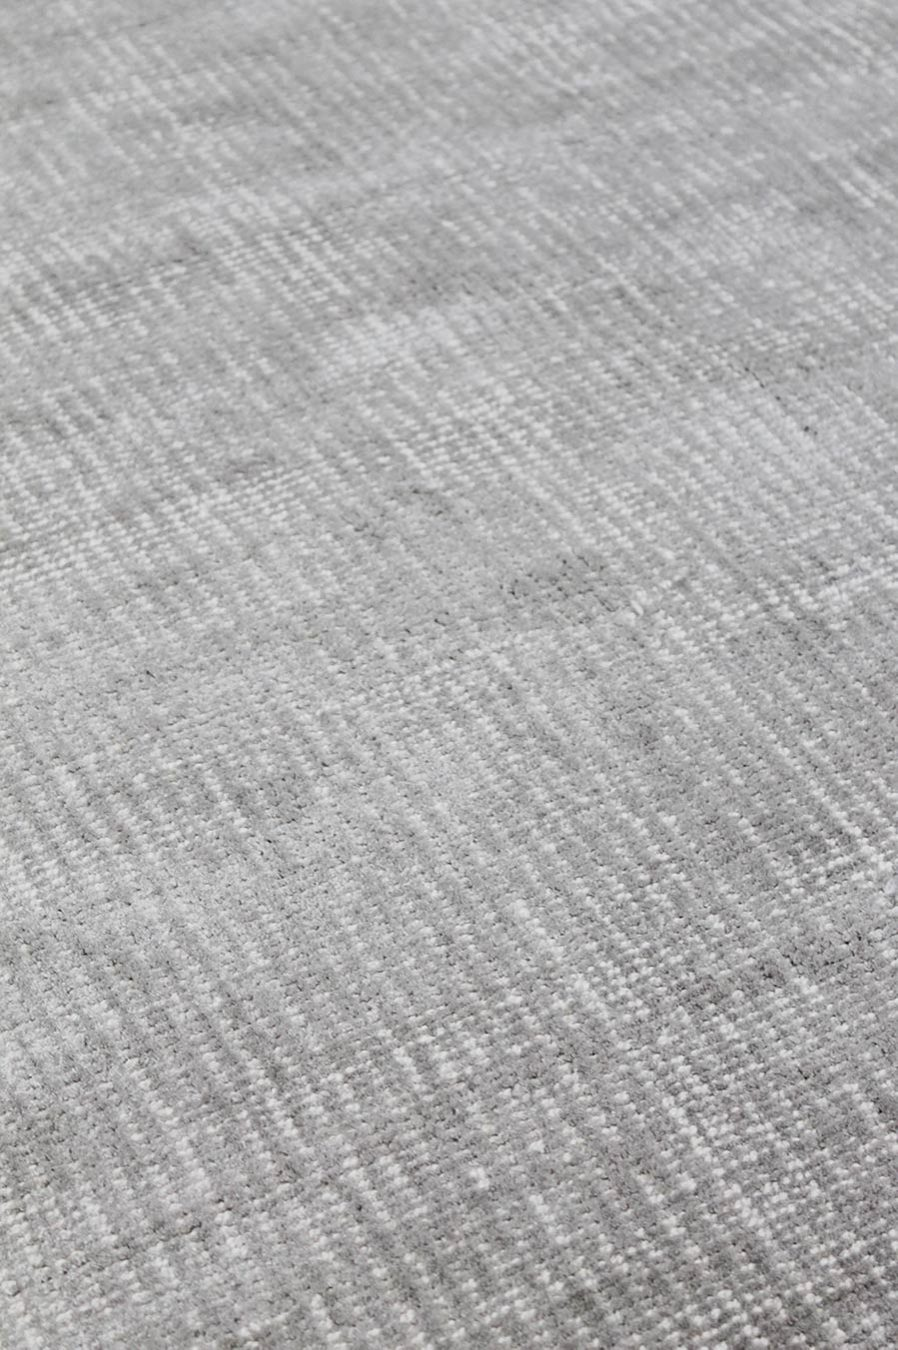 Close up view of textured Colorado rug in silver colour